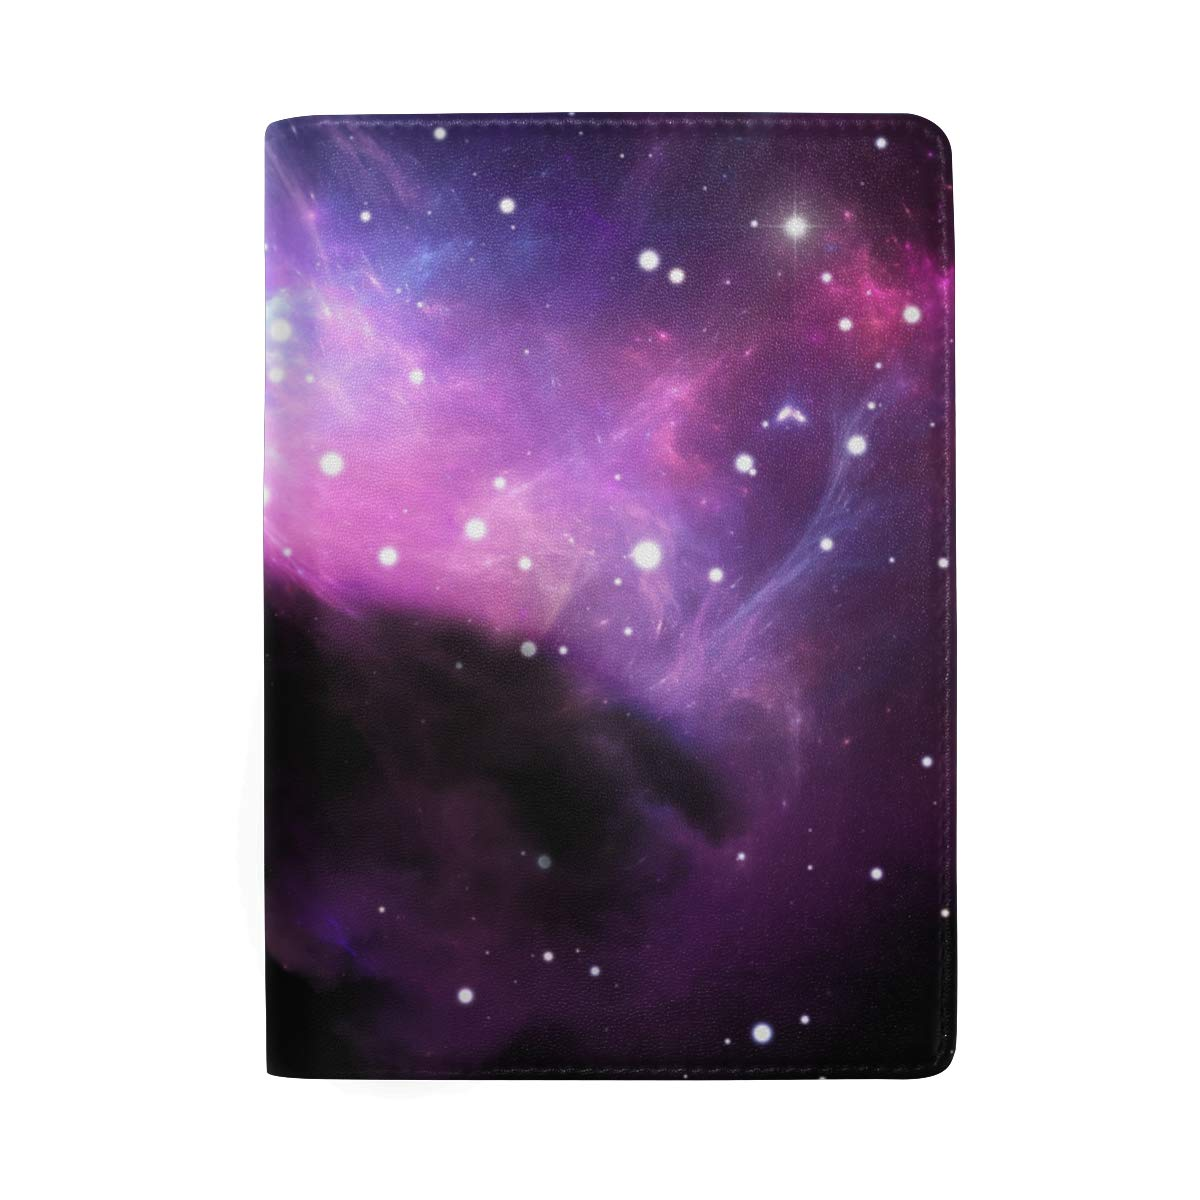 Space Purple Nebula Stars Leather Passport Holder Cover Case Protector for Men Women Travel with Slots